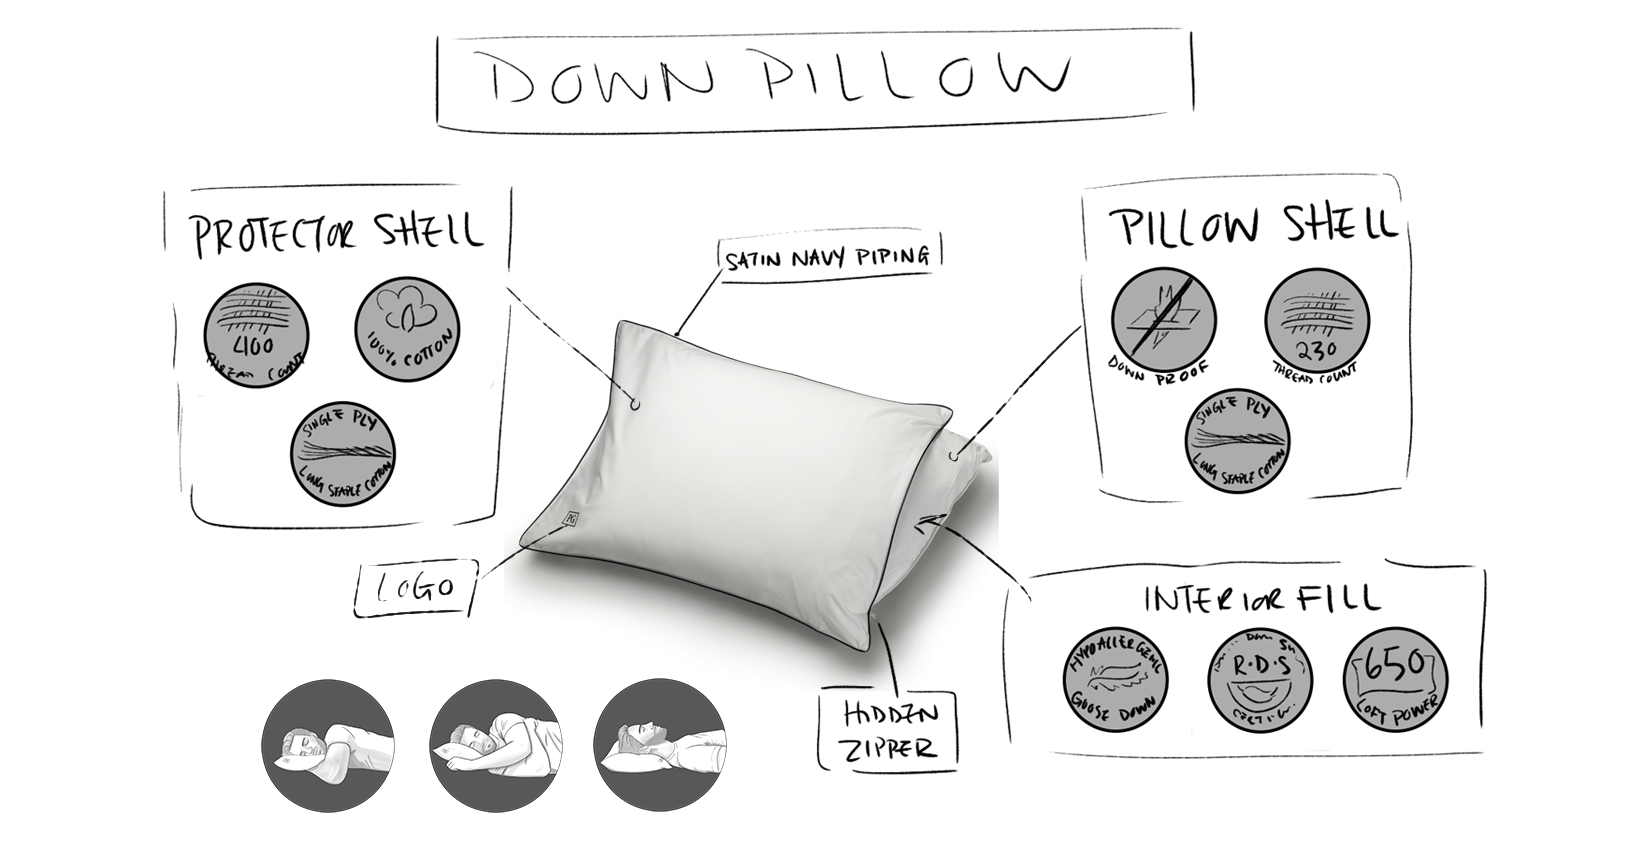 Down Pilow infographic_draft 2 web size test (1)